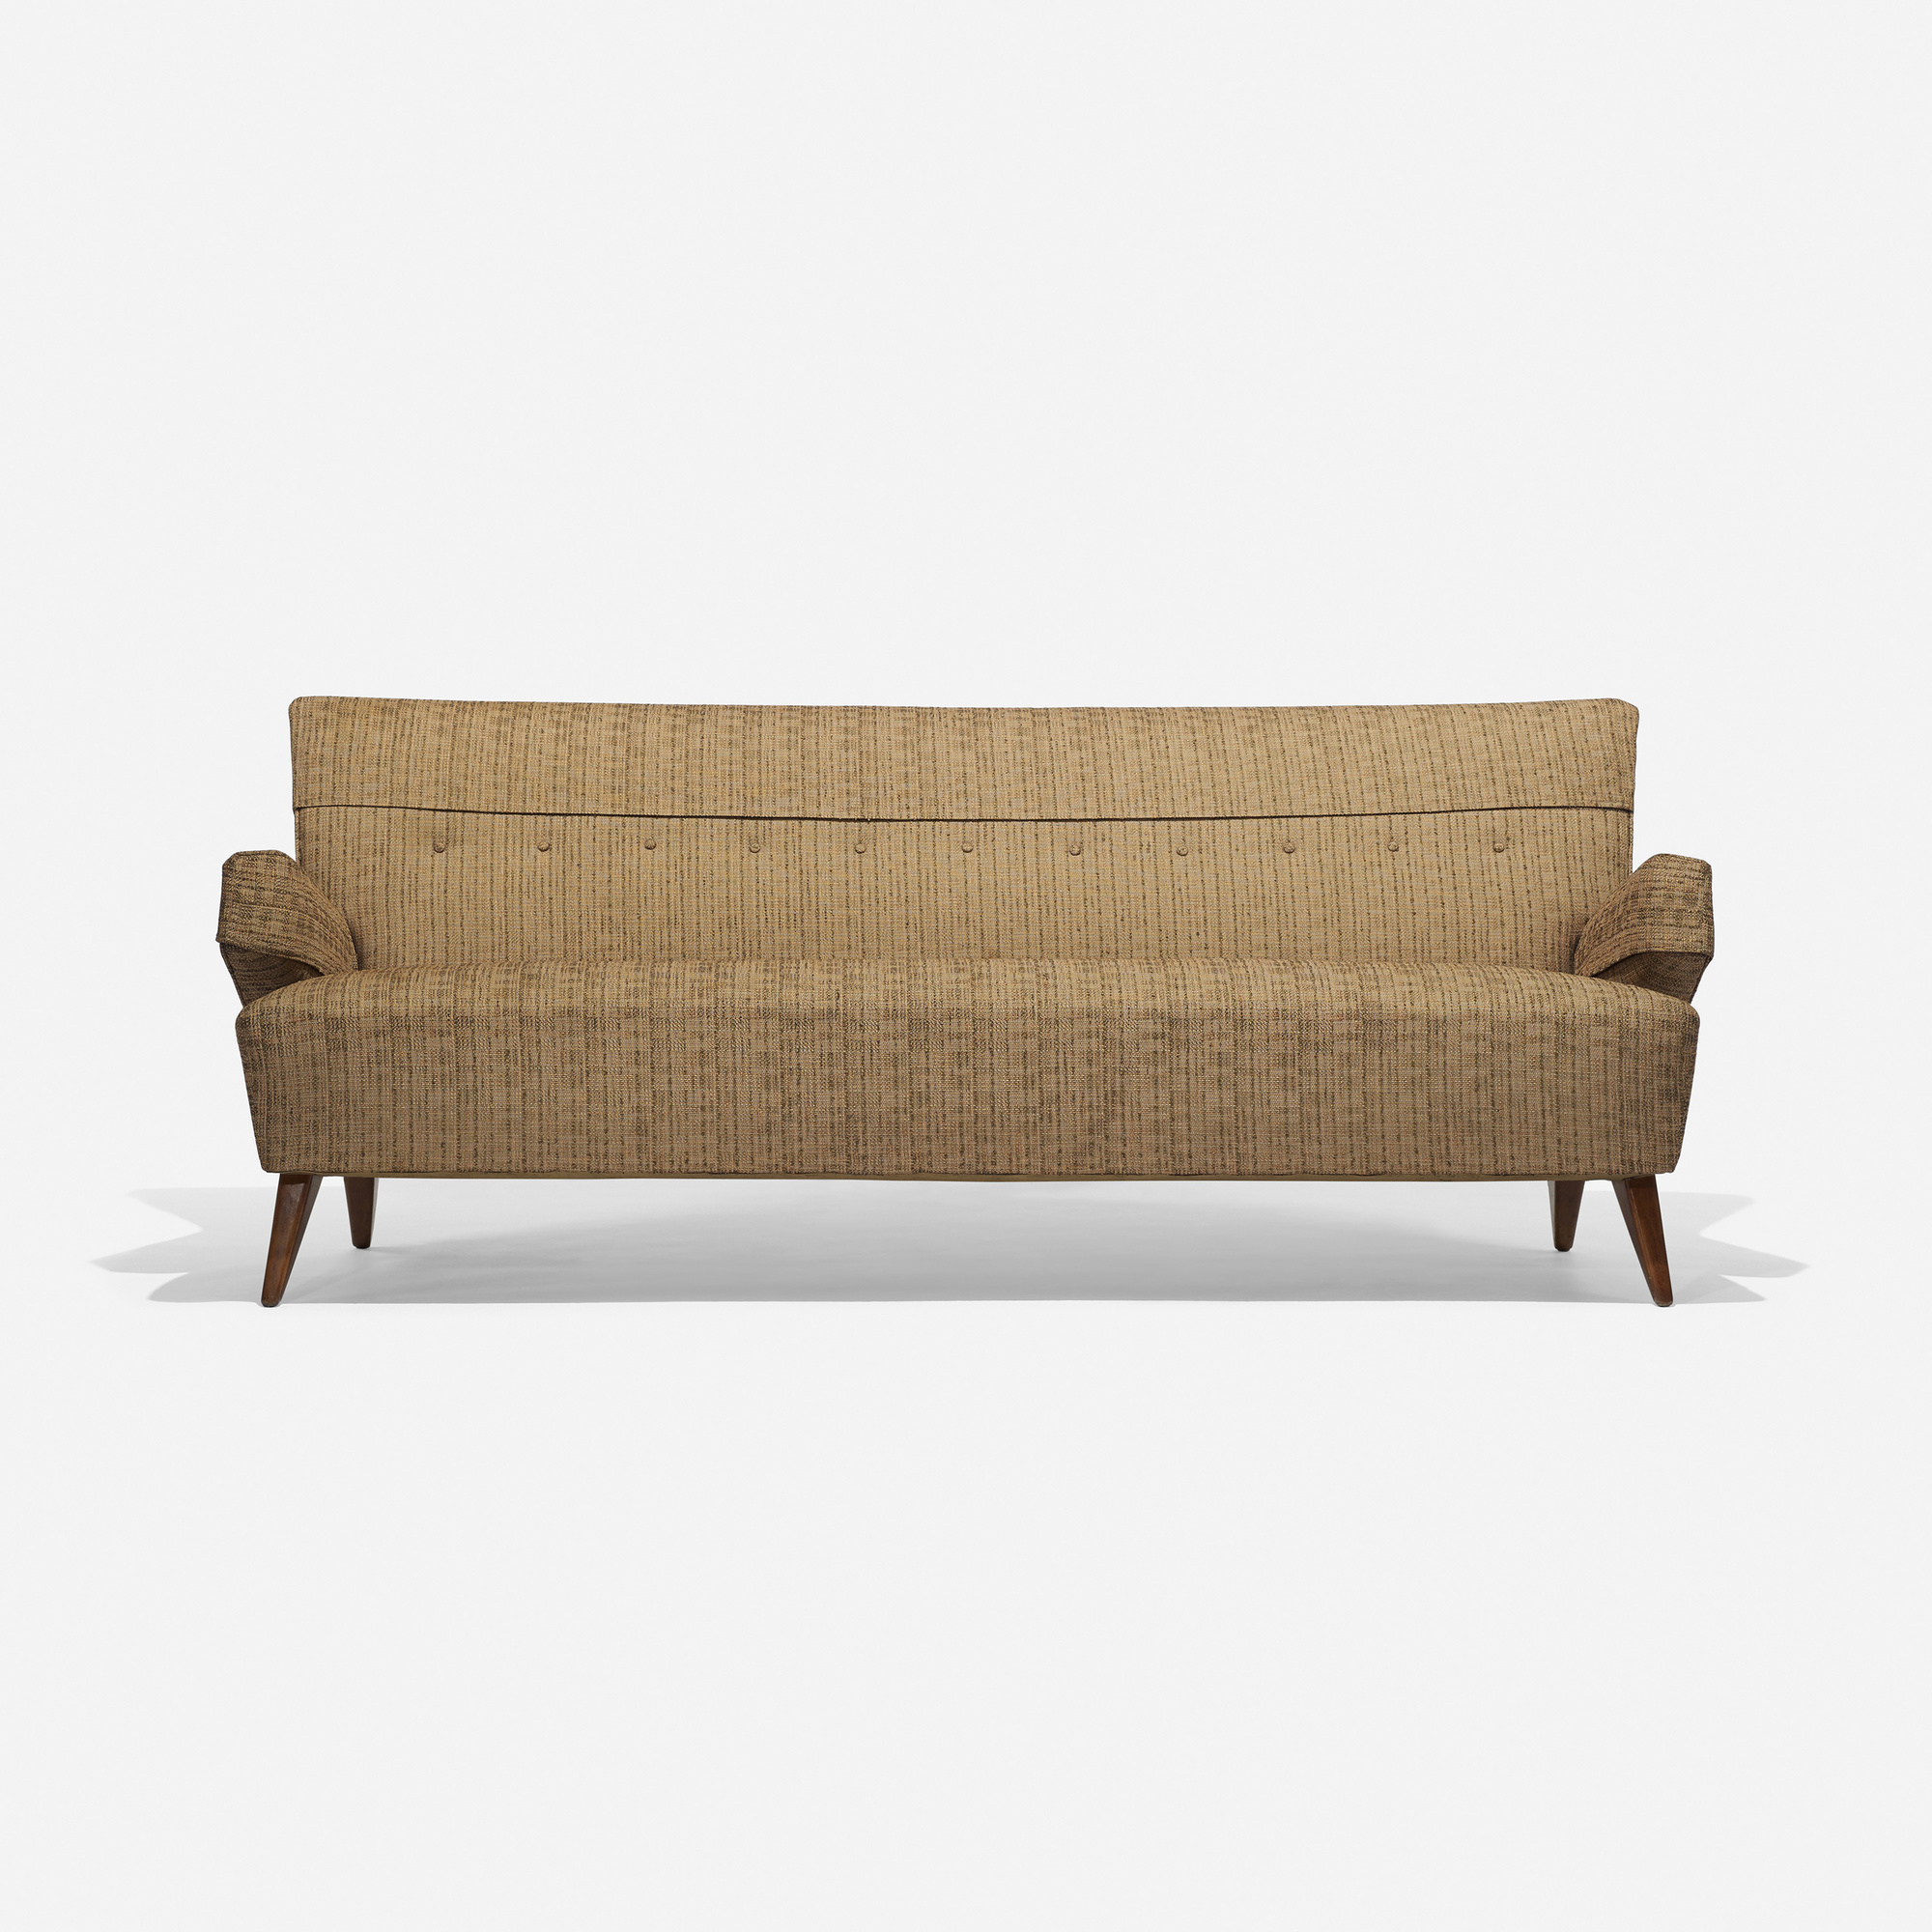 florence knoll sofa review mid century modern style leather auction finds of the week may 13th a